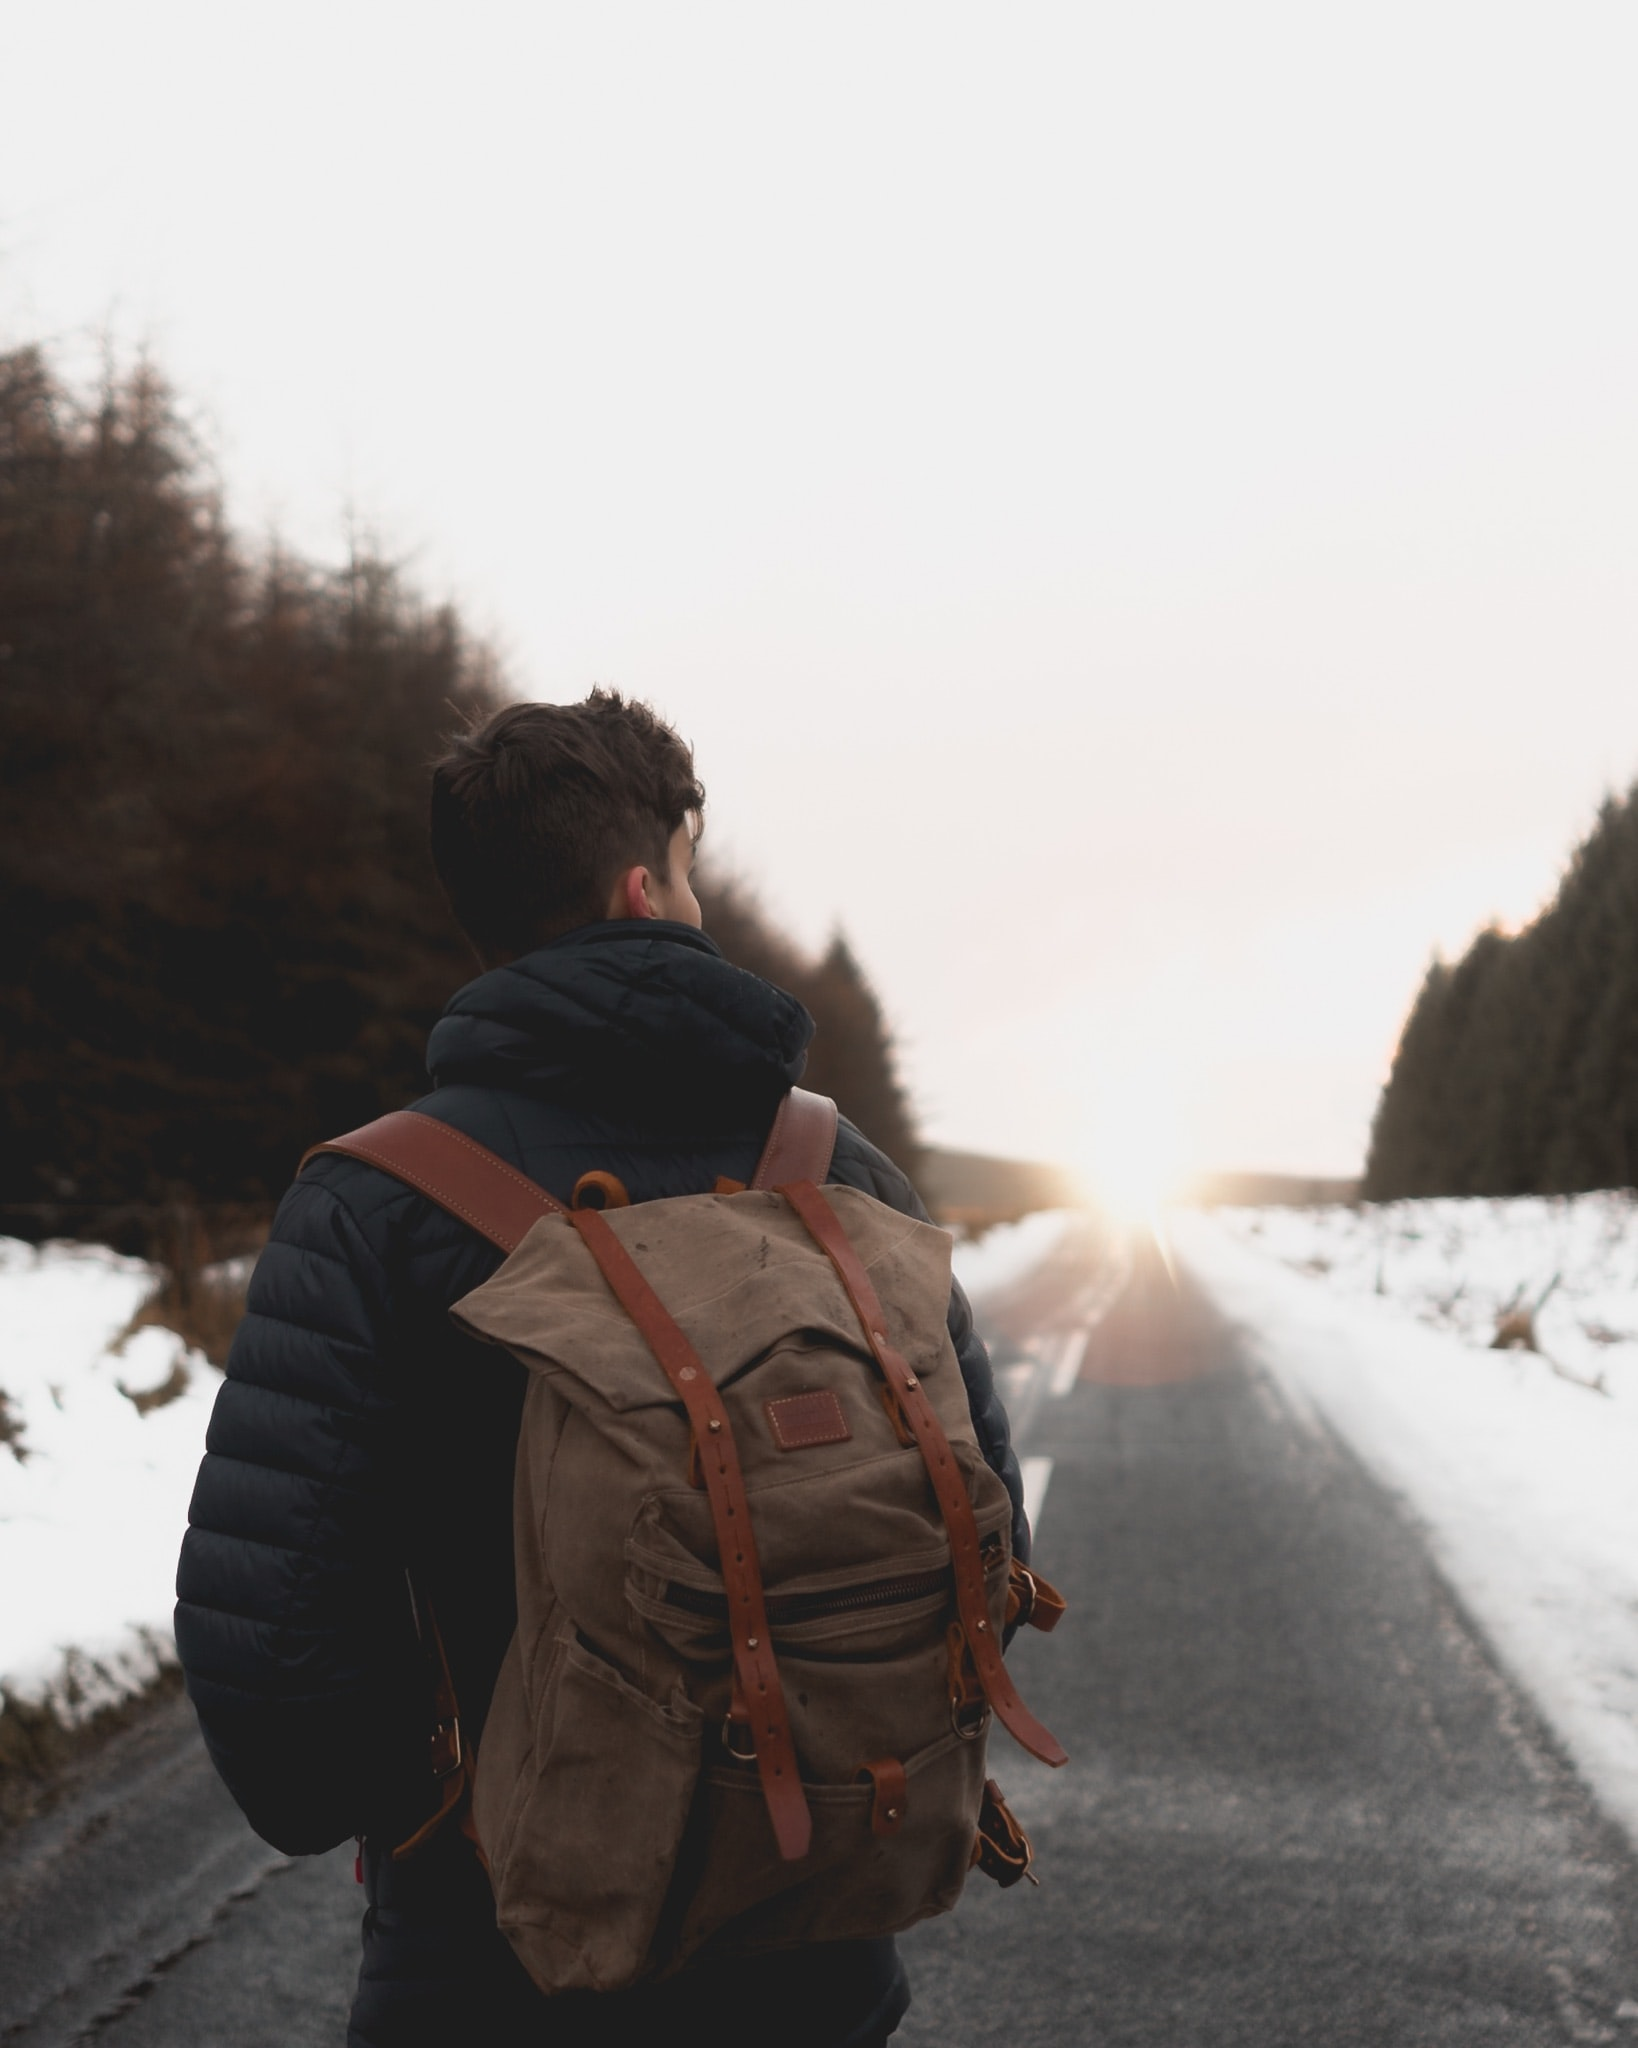 A guy walks with a backpack on a road during the winter in Springwell Forest, United Kingdom